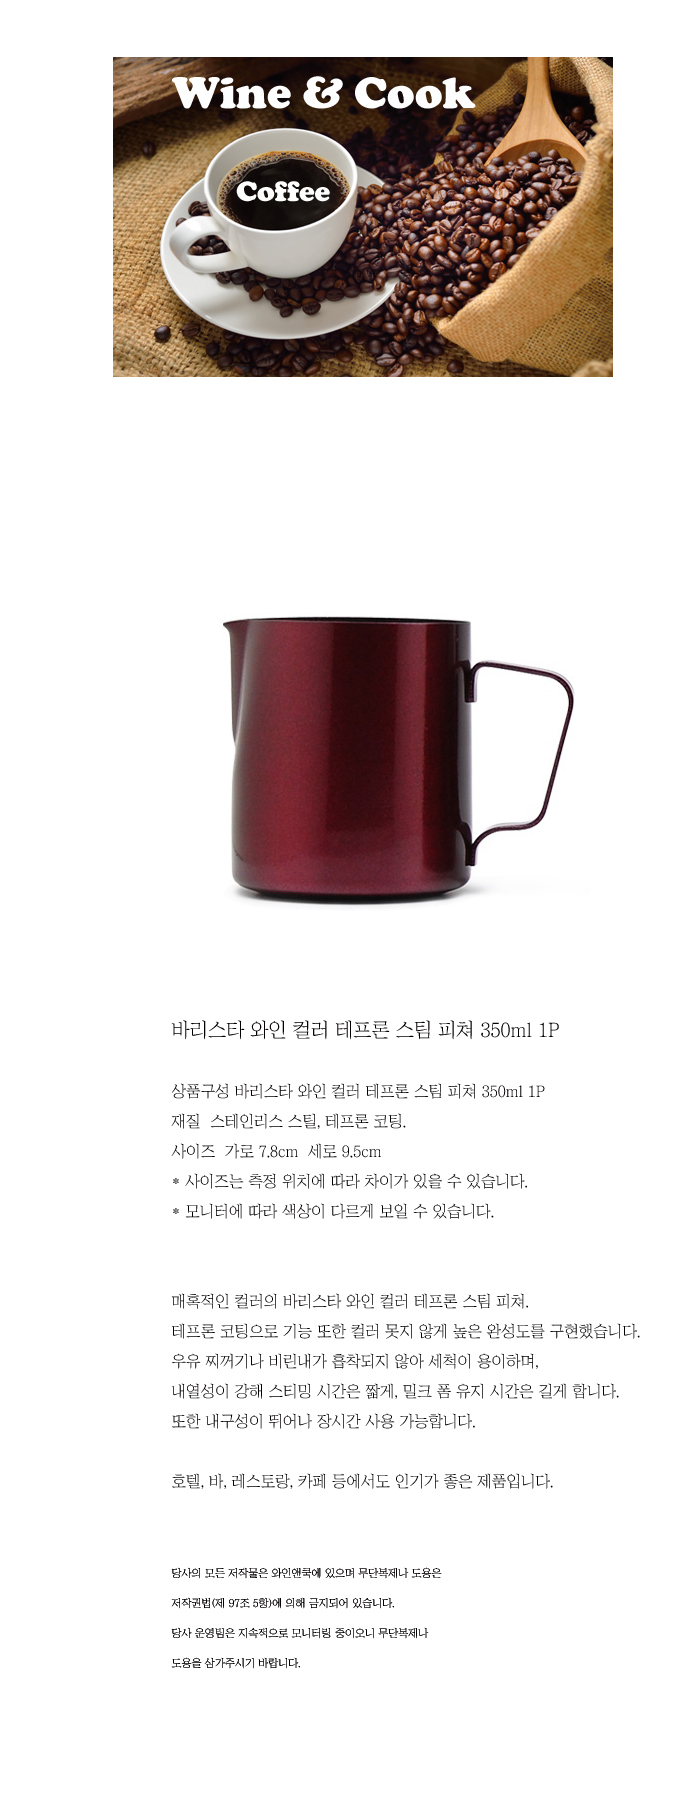 [ WINEQOK ] Barista Wine Color Teflon Steam Pitcher 350ml 1P